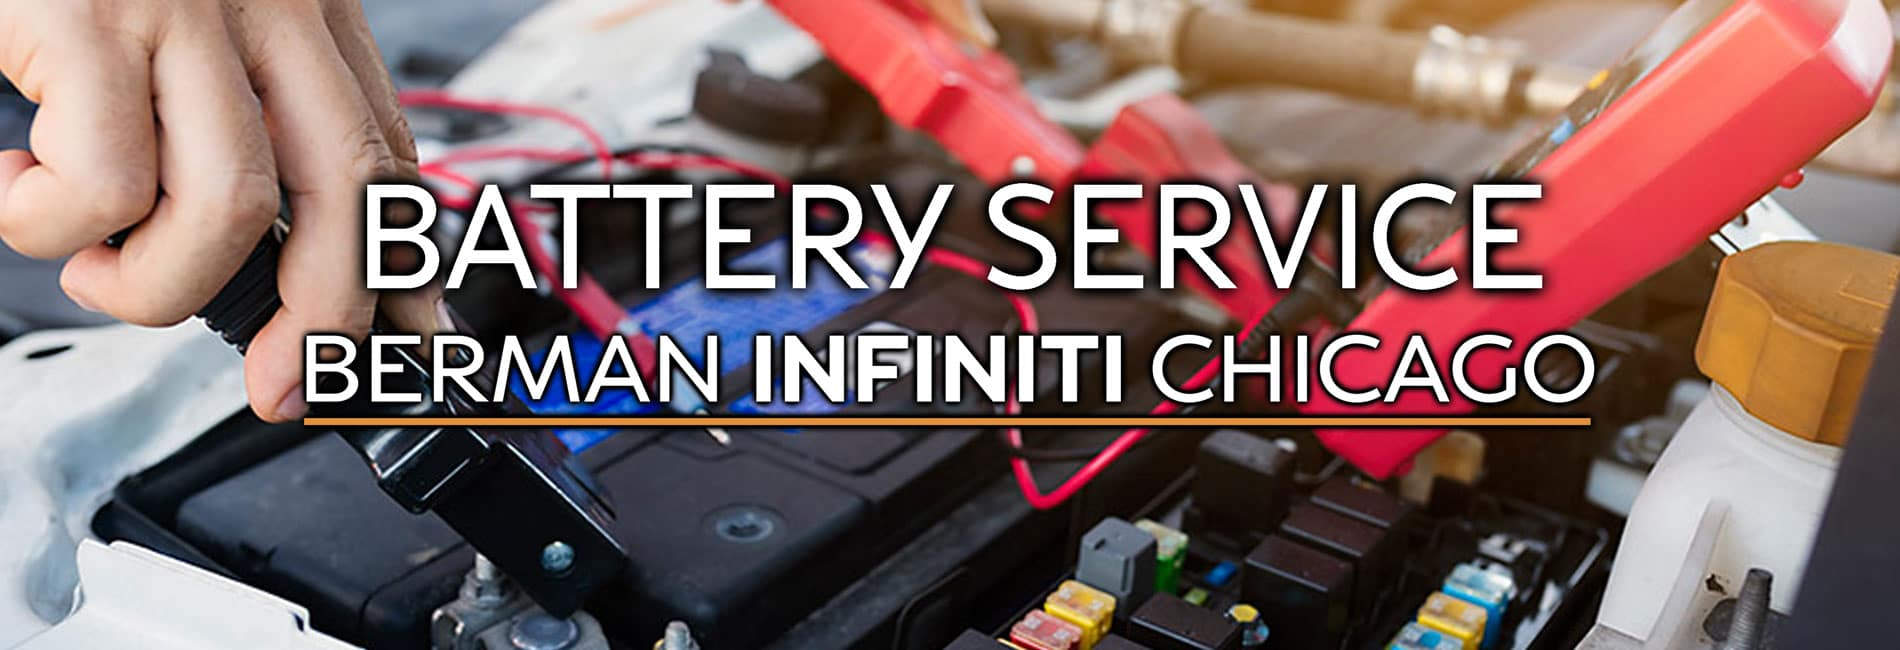 INFINITI Battery Service at Berman INFINITI Chicago